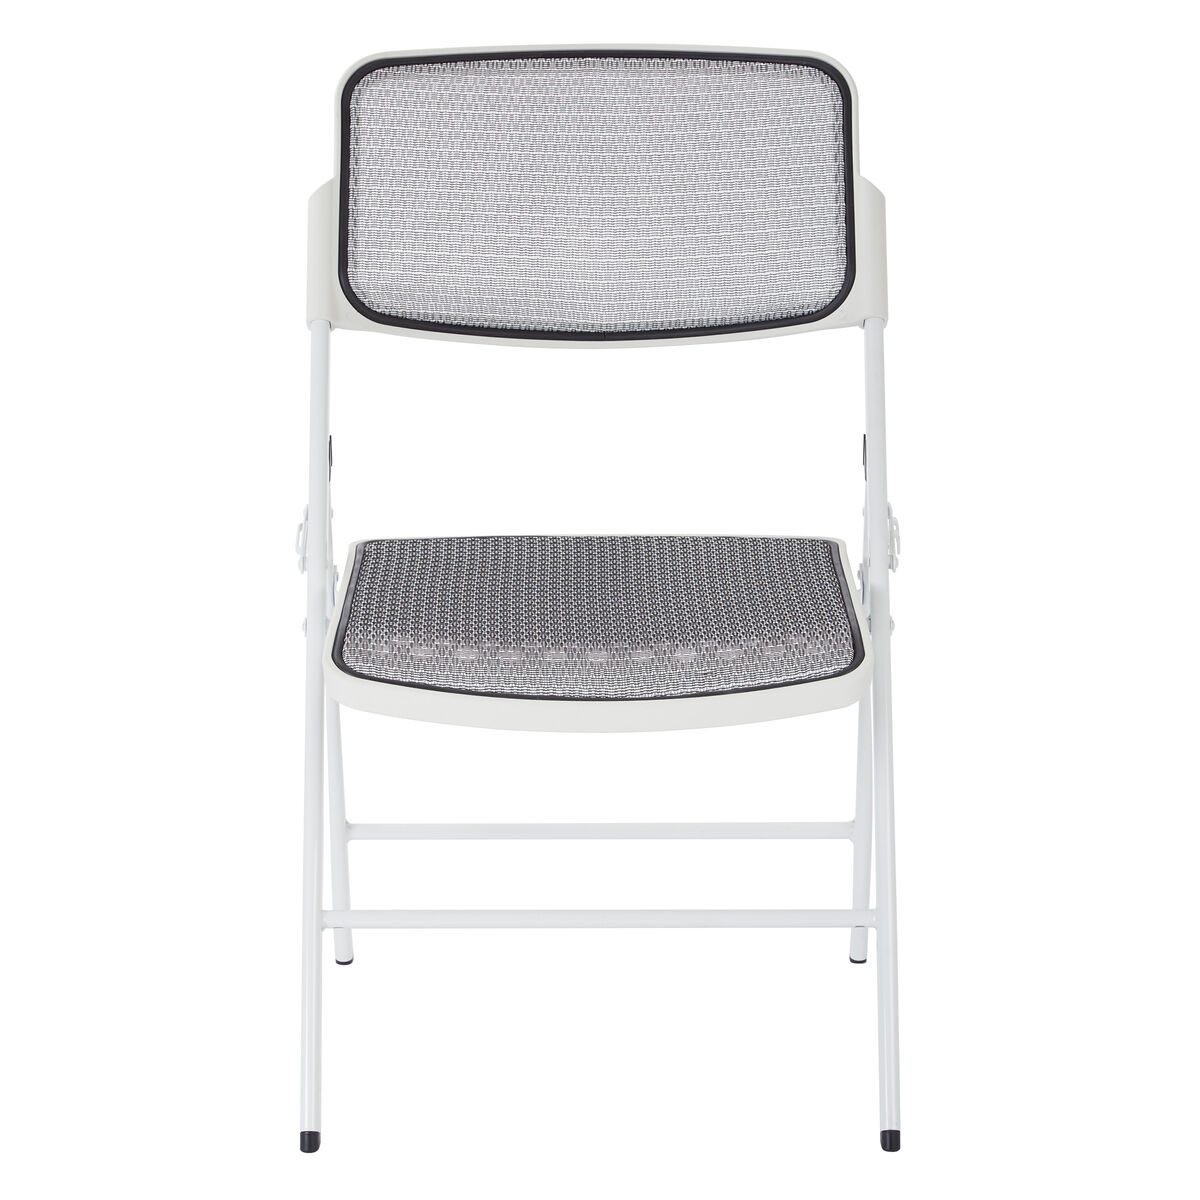 Astonishing Pro Line Ii Deluxe Progrid Mesh Seat And Back Folding Chair With 400 Lb Weight Capacity Set Of 2 White Gmtry Best Dining Table And Chair Ideas Images Gmtryco